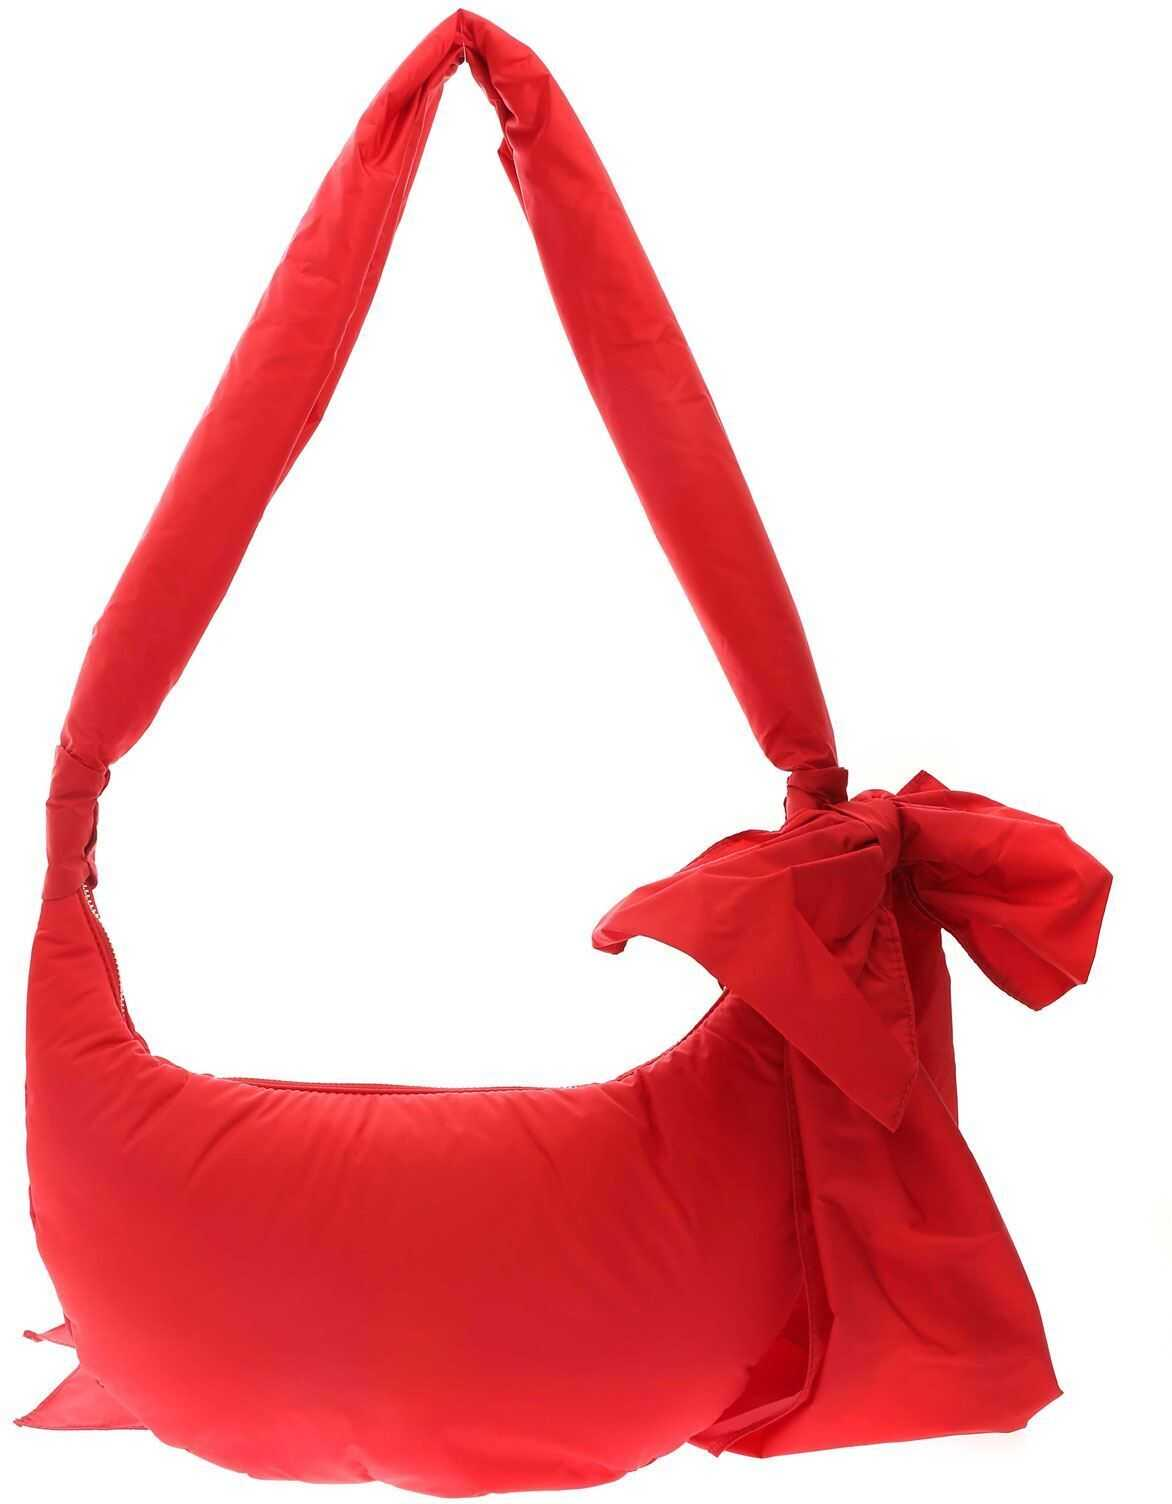 RED VALENTINO Maxi Bow Hobo Bag In Red VQ2B0C44BAAL58 Red imagine b-mall.ro